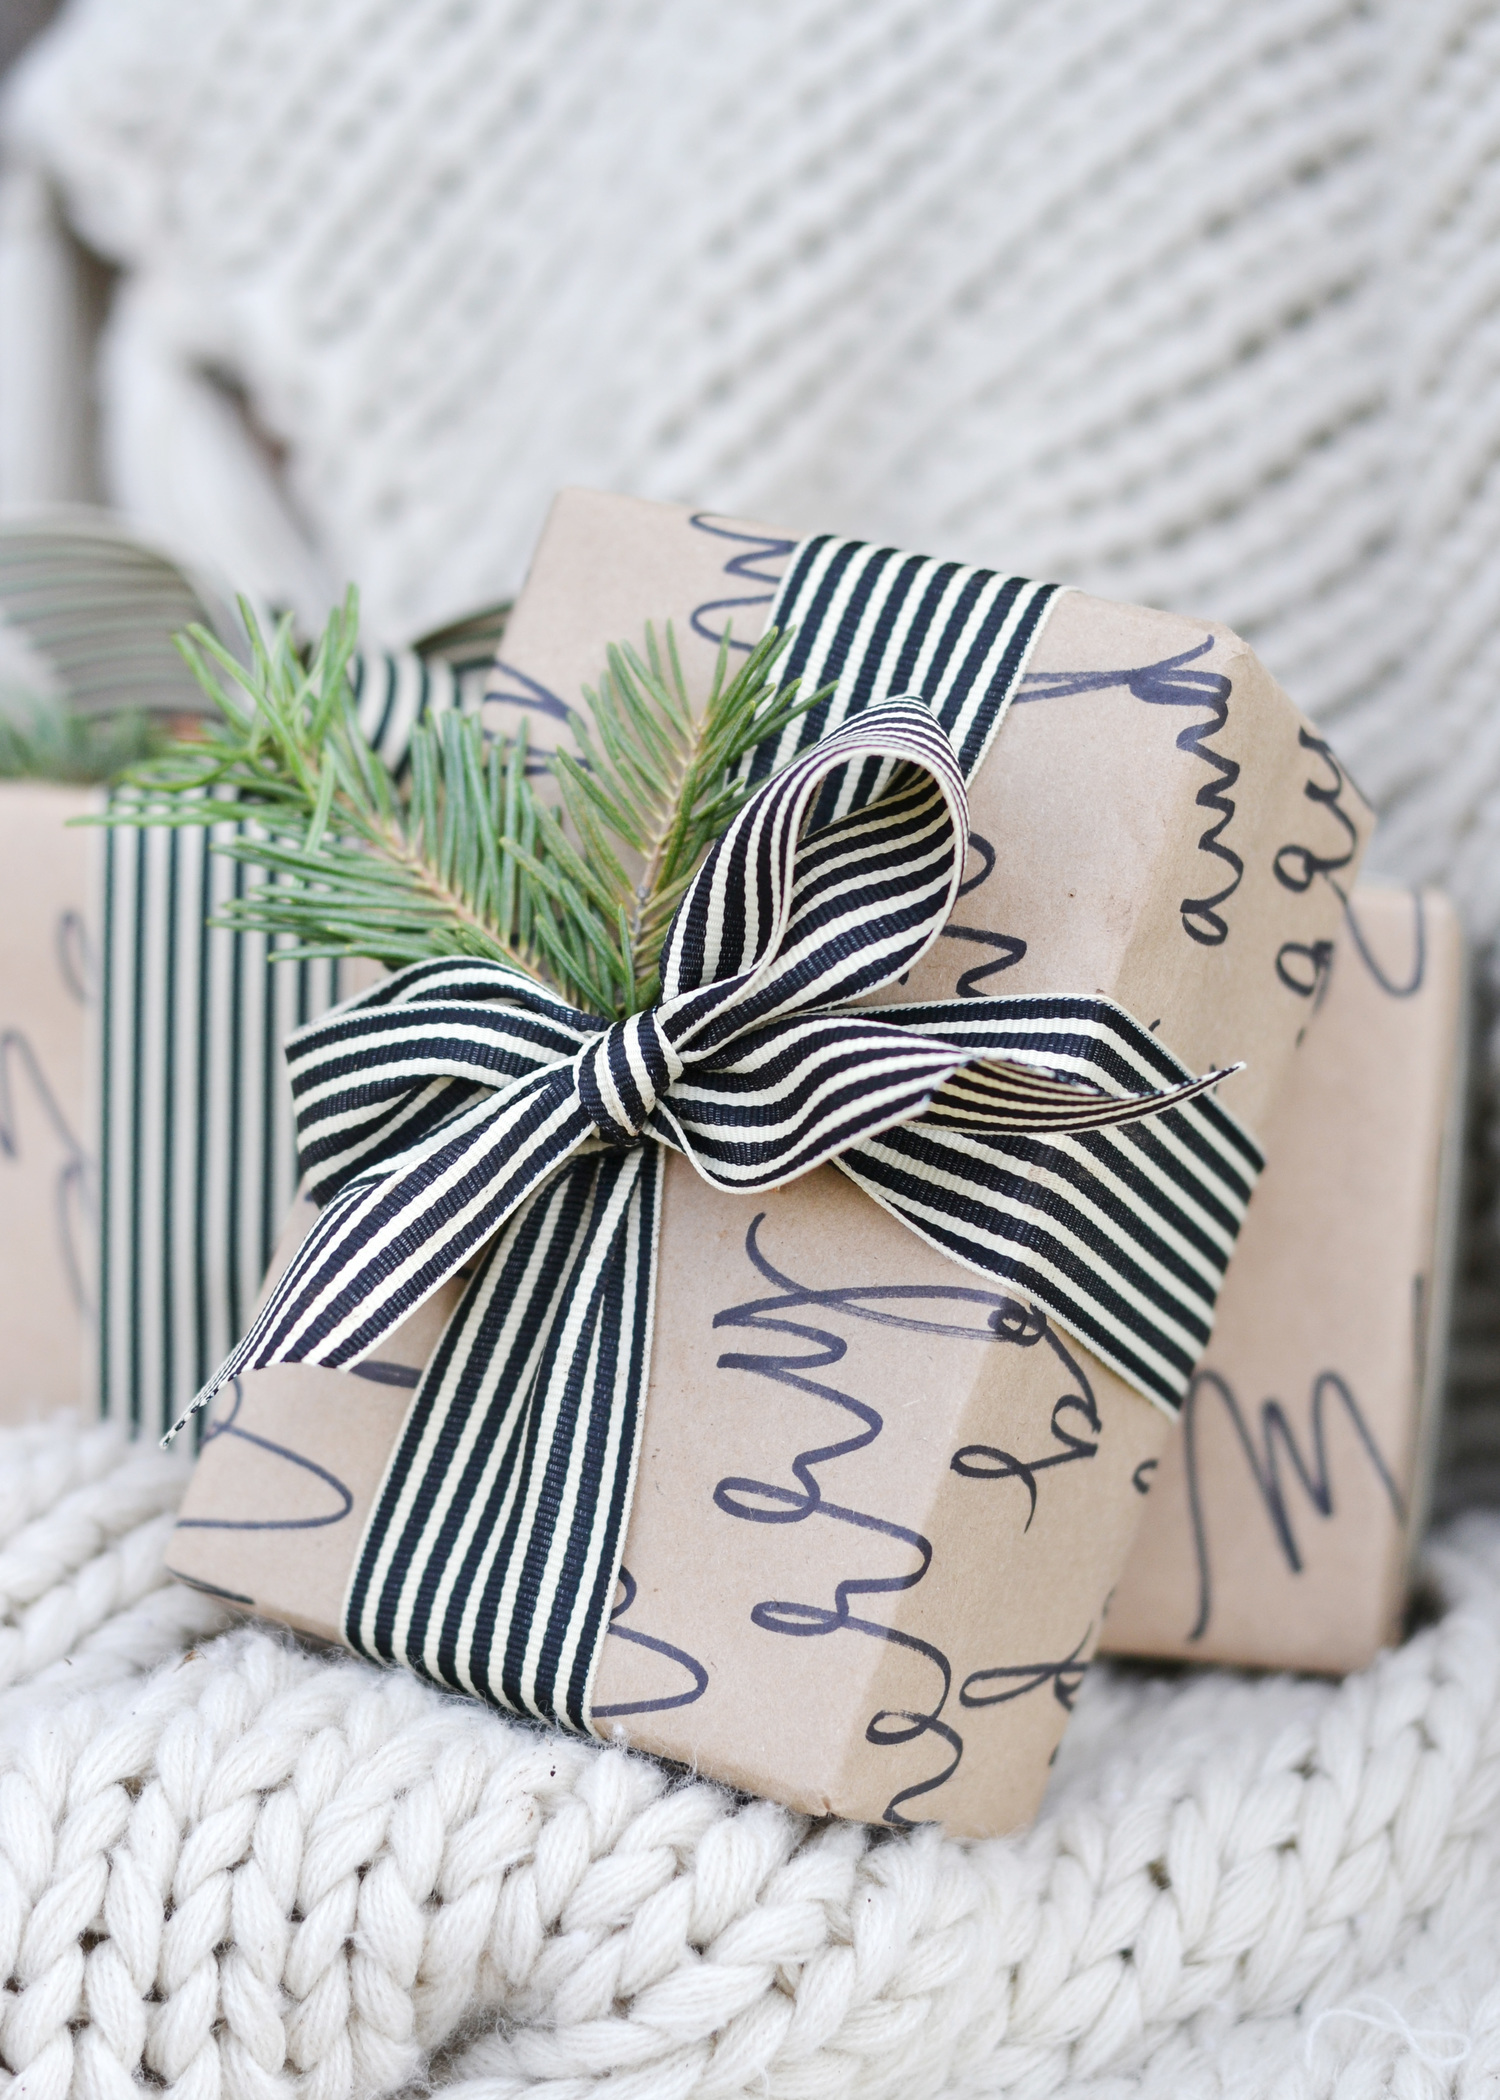 Handwritten wrapping paper